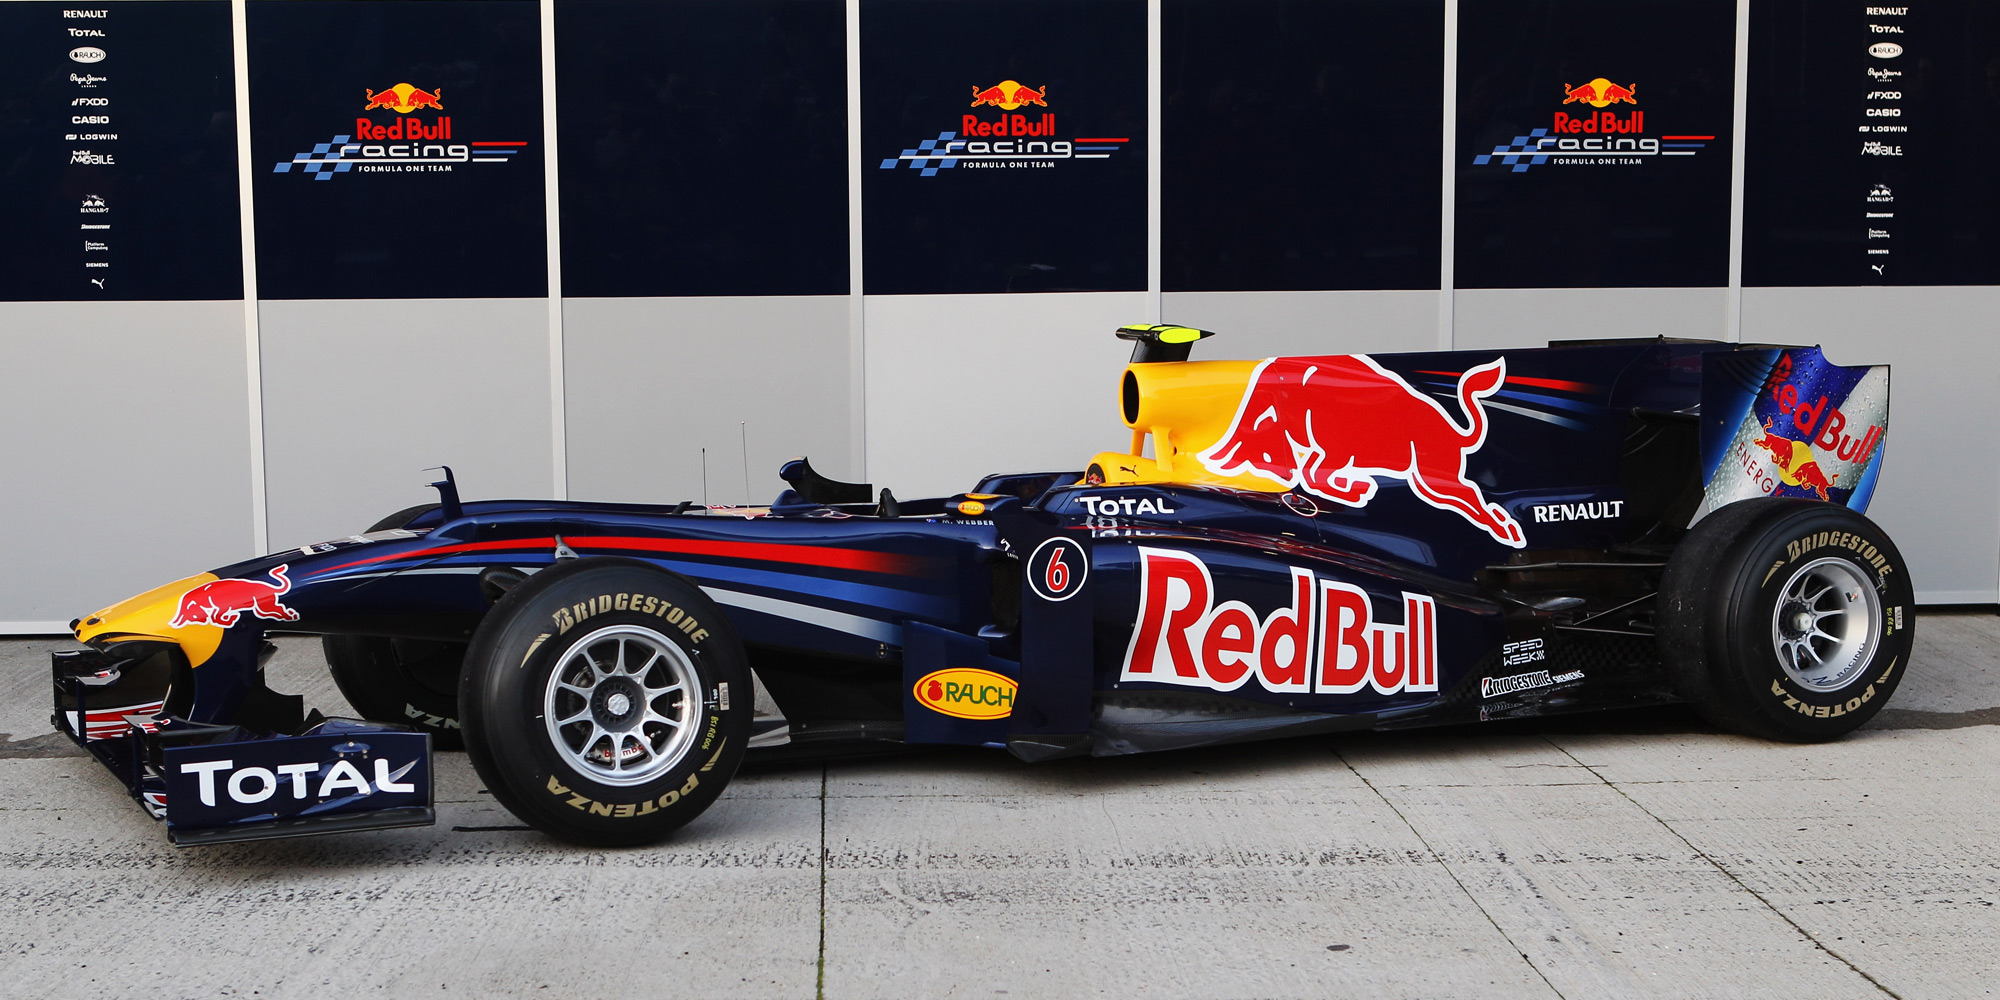 Racing unveils 2010 F1 car